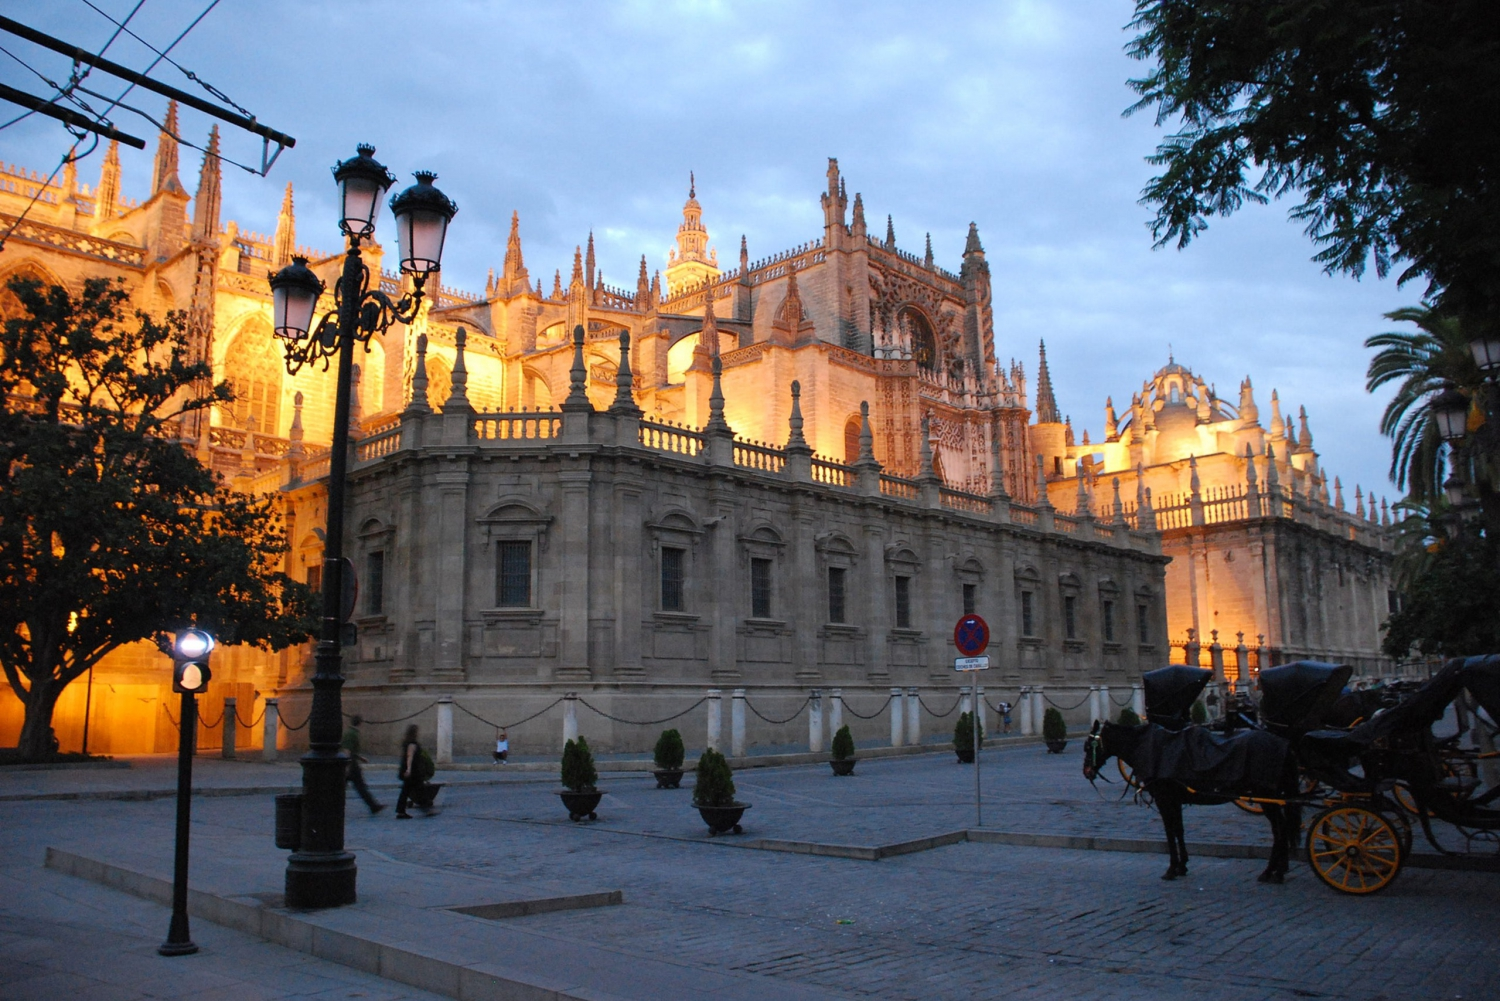 3-Day Costa del Sol & Extremadura Sightseeing Tour